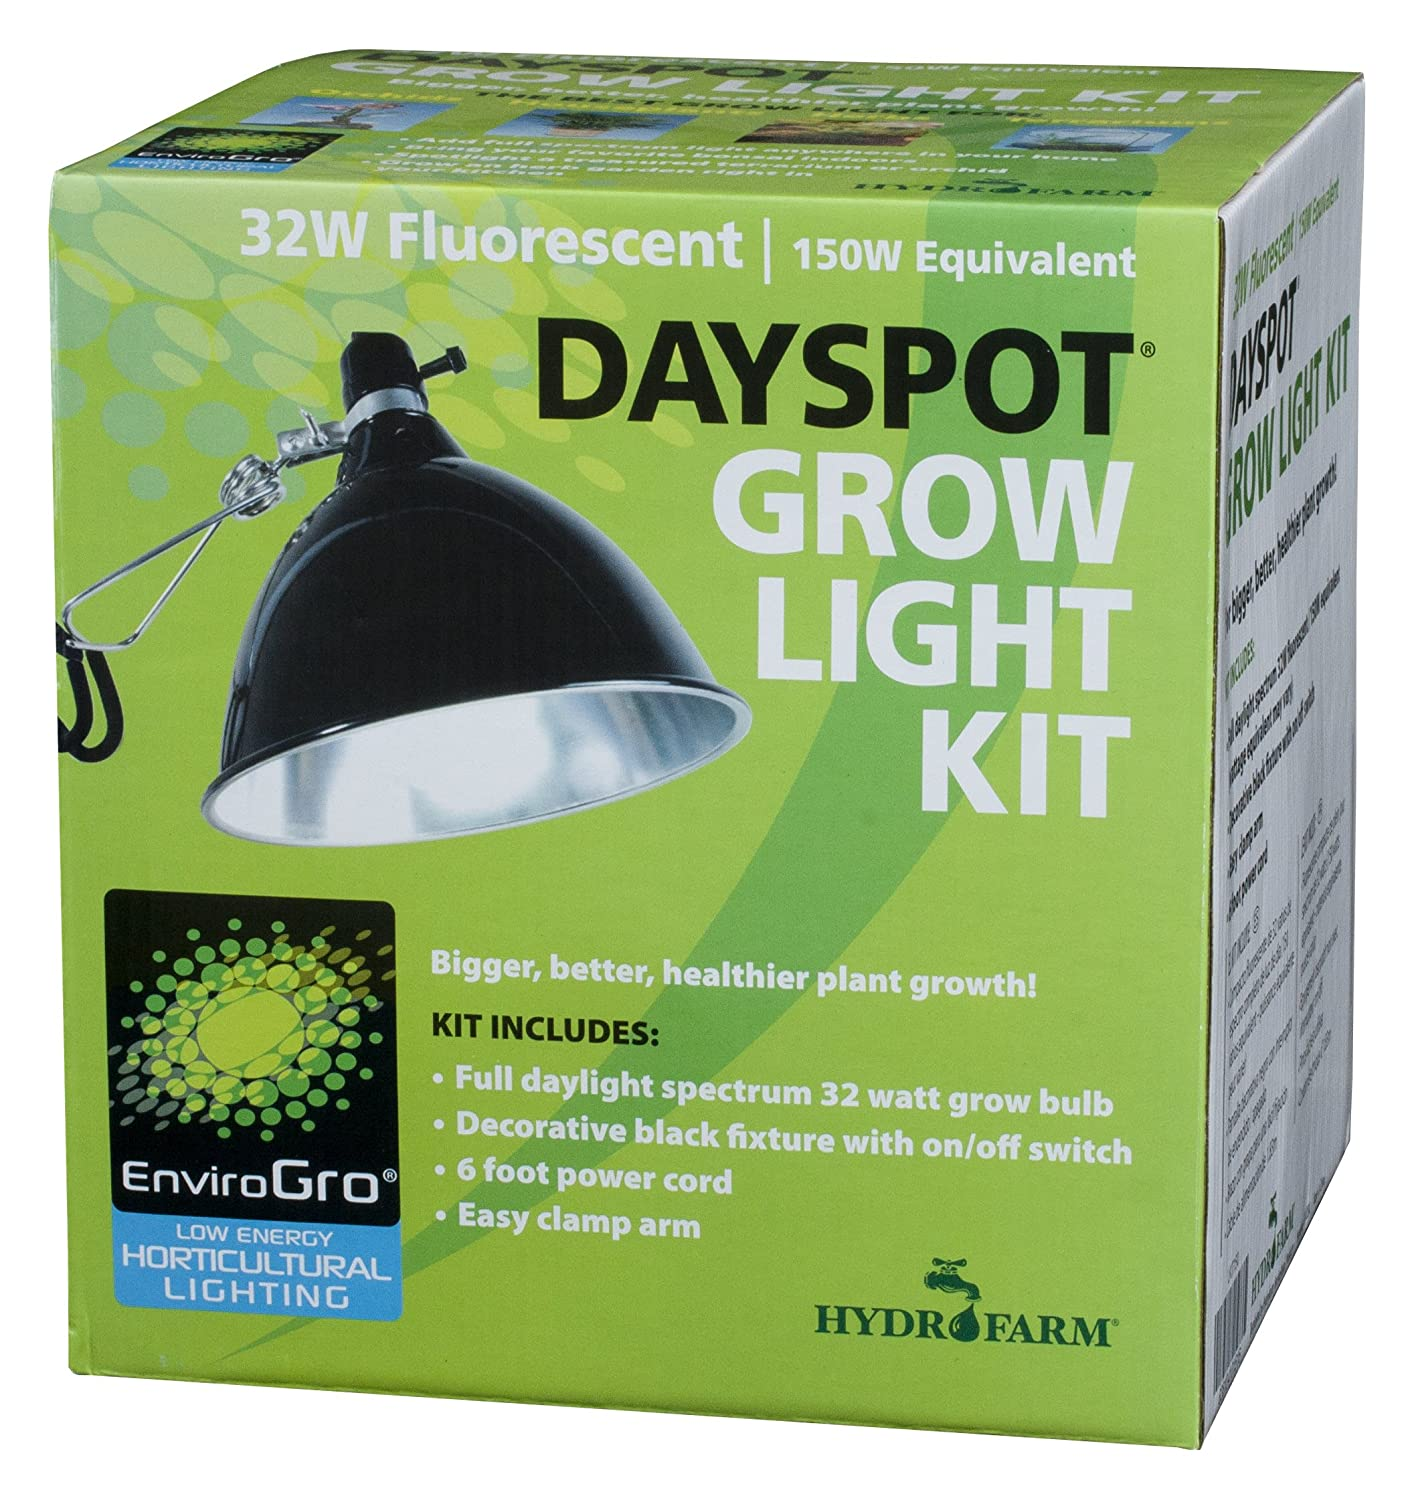 amazoncom dayspot 32w 150w equivalent dayspot grow light kit plant growing light fixtures garden u0026 outdoor